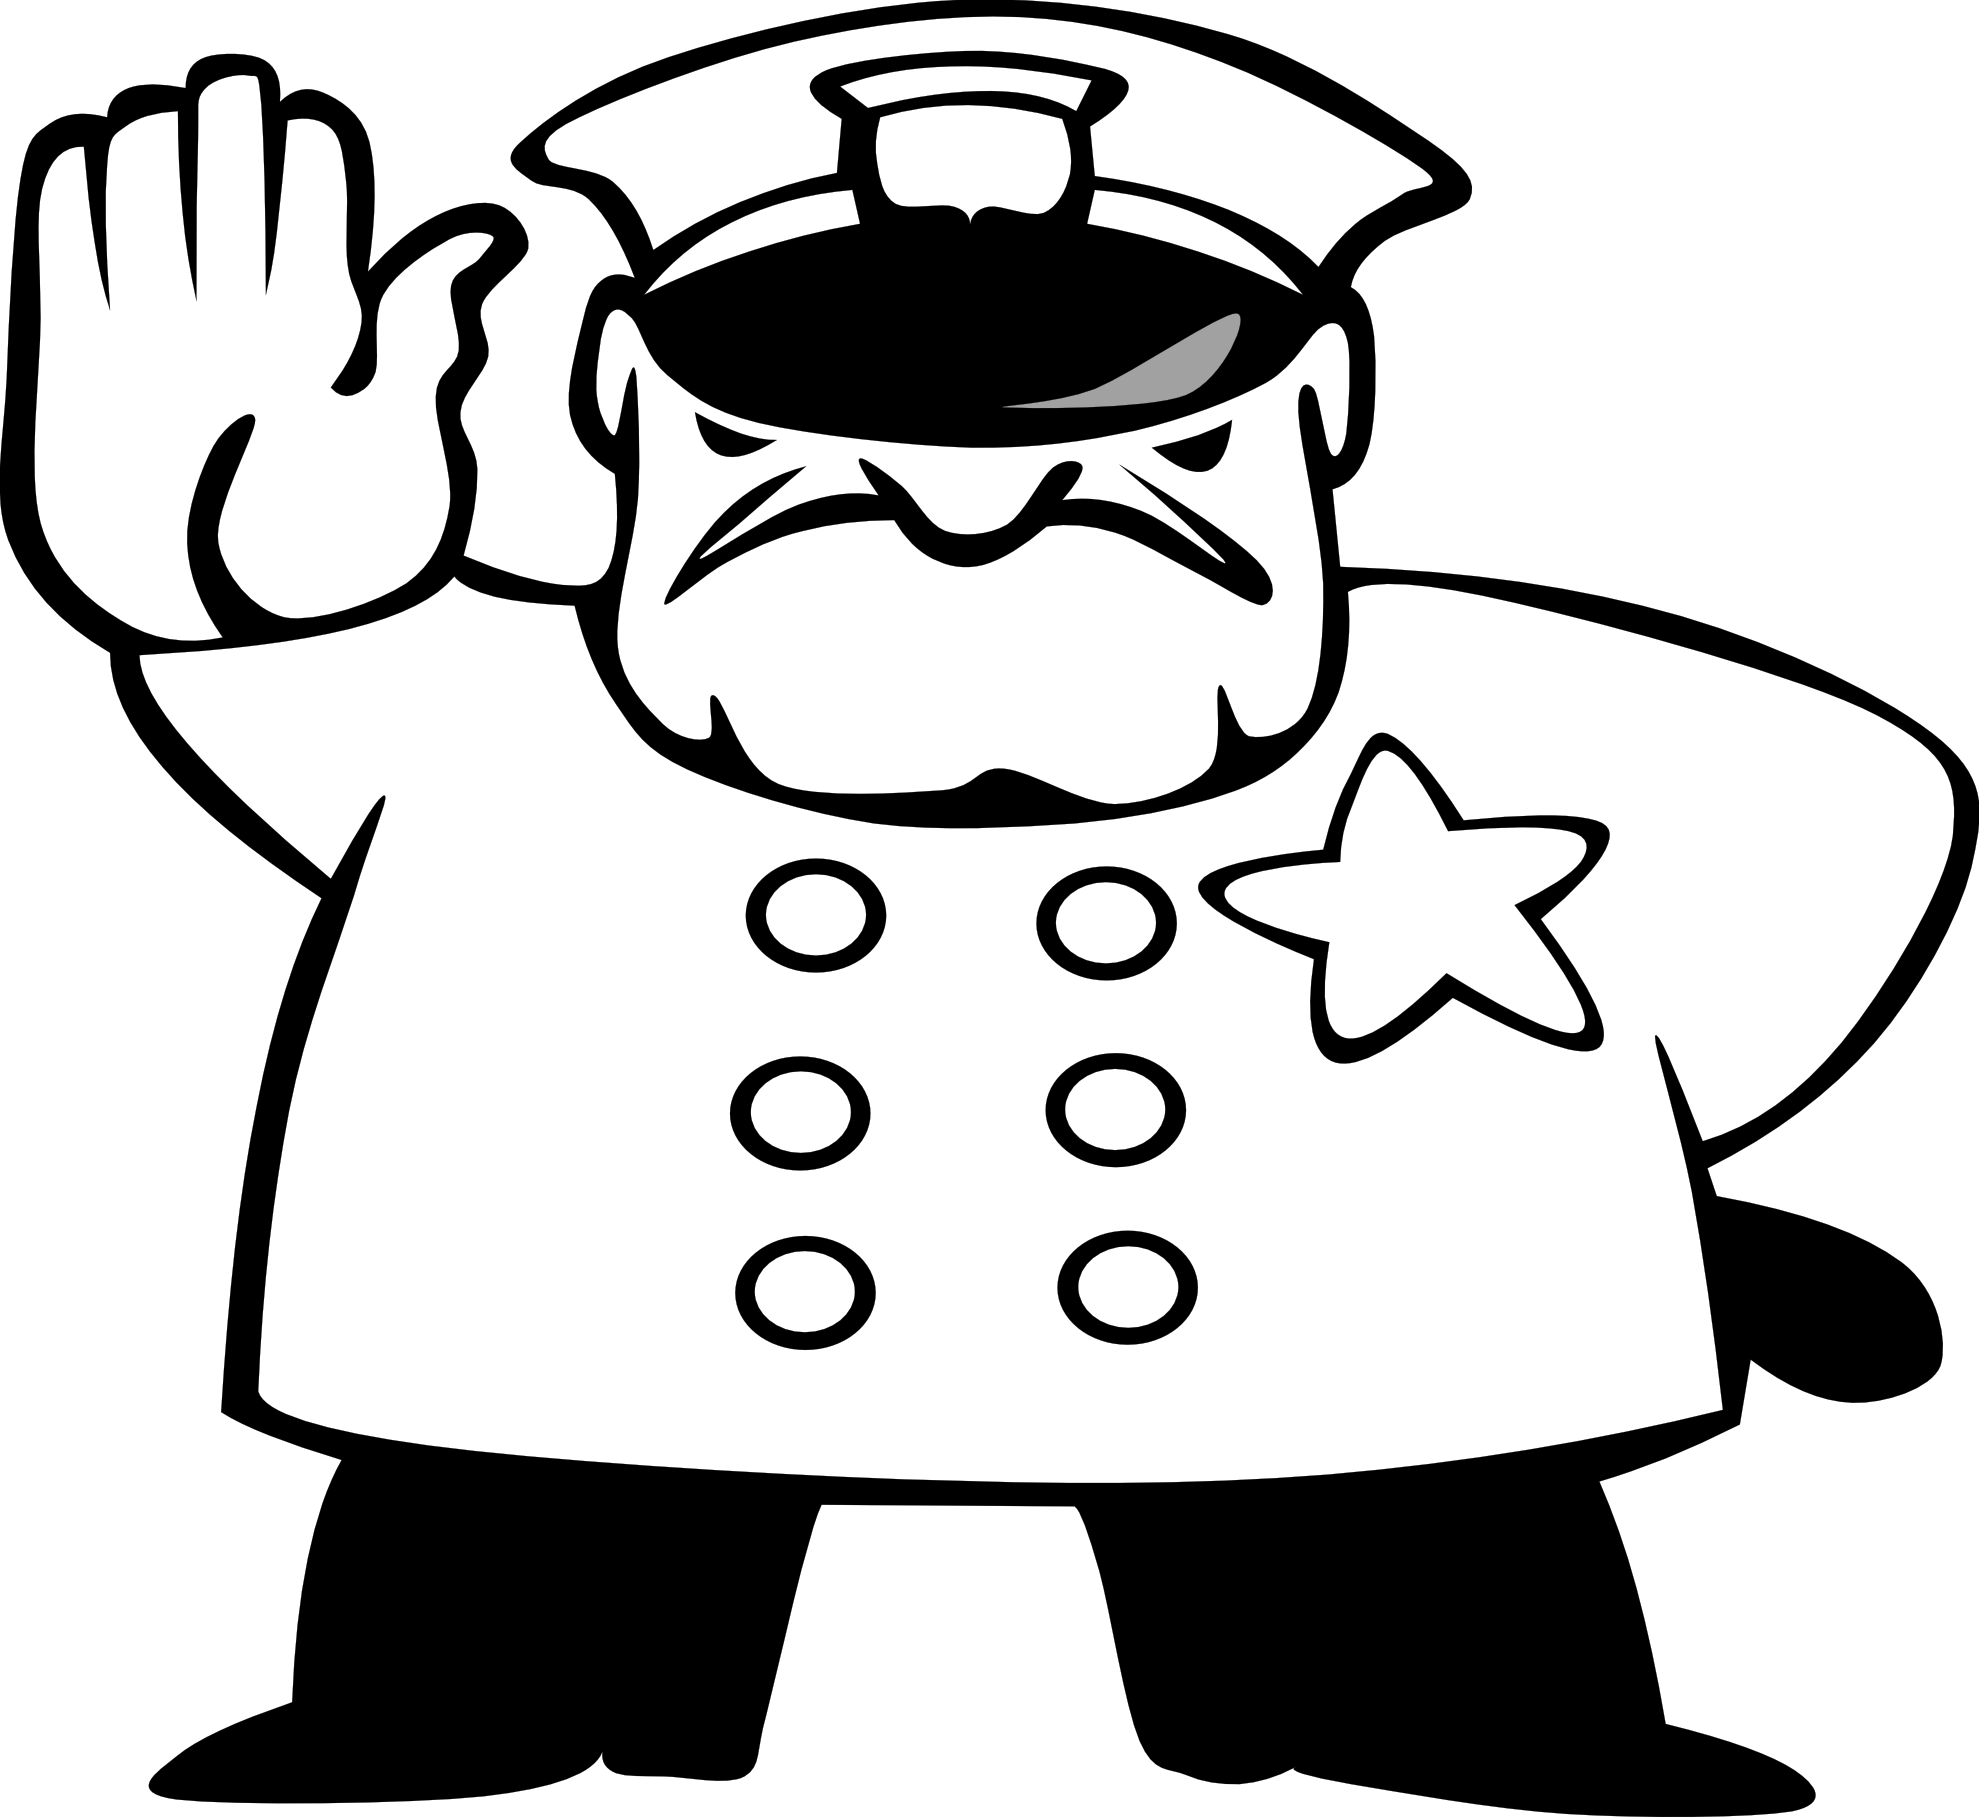 Police Black And White Clipart - Clipart Kid